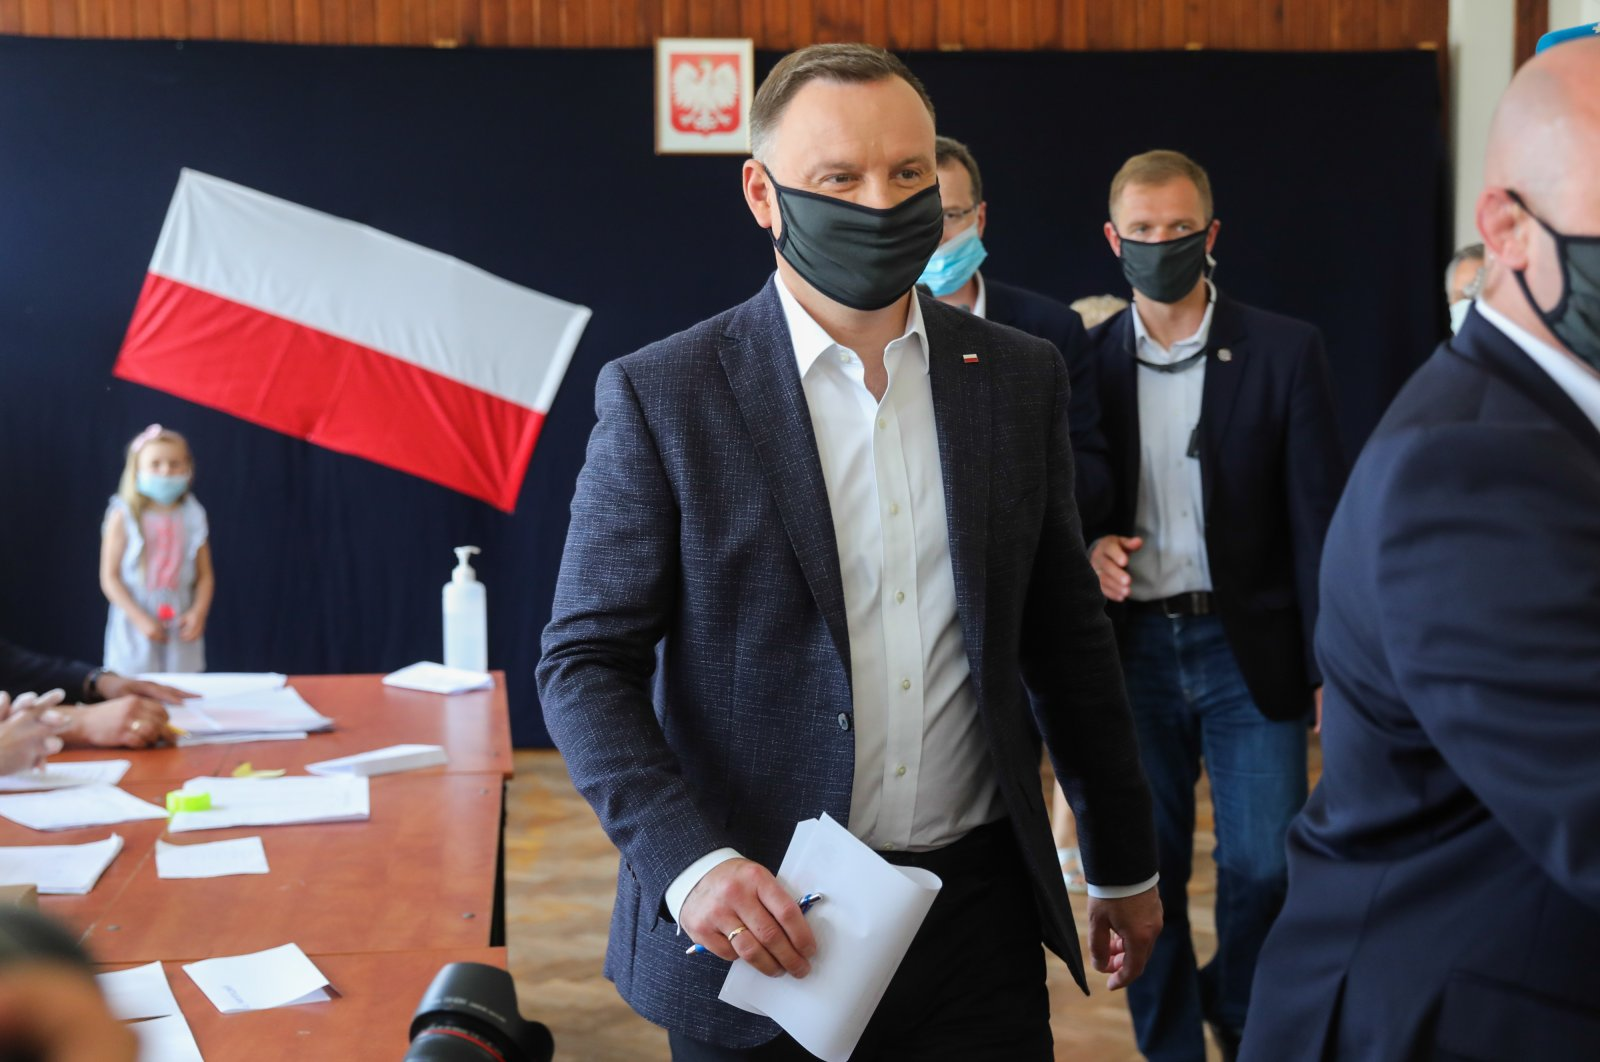 President Andrzej Duda, wearing a protective face mask, casts his ballot during the presidential election at a polling station in Krakow, Poland, June 28, 2020. (AA Photo)